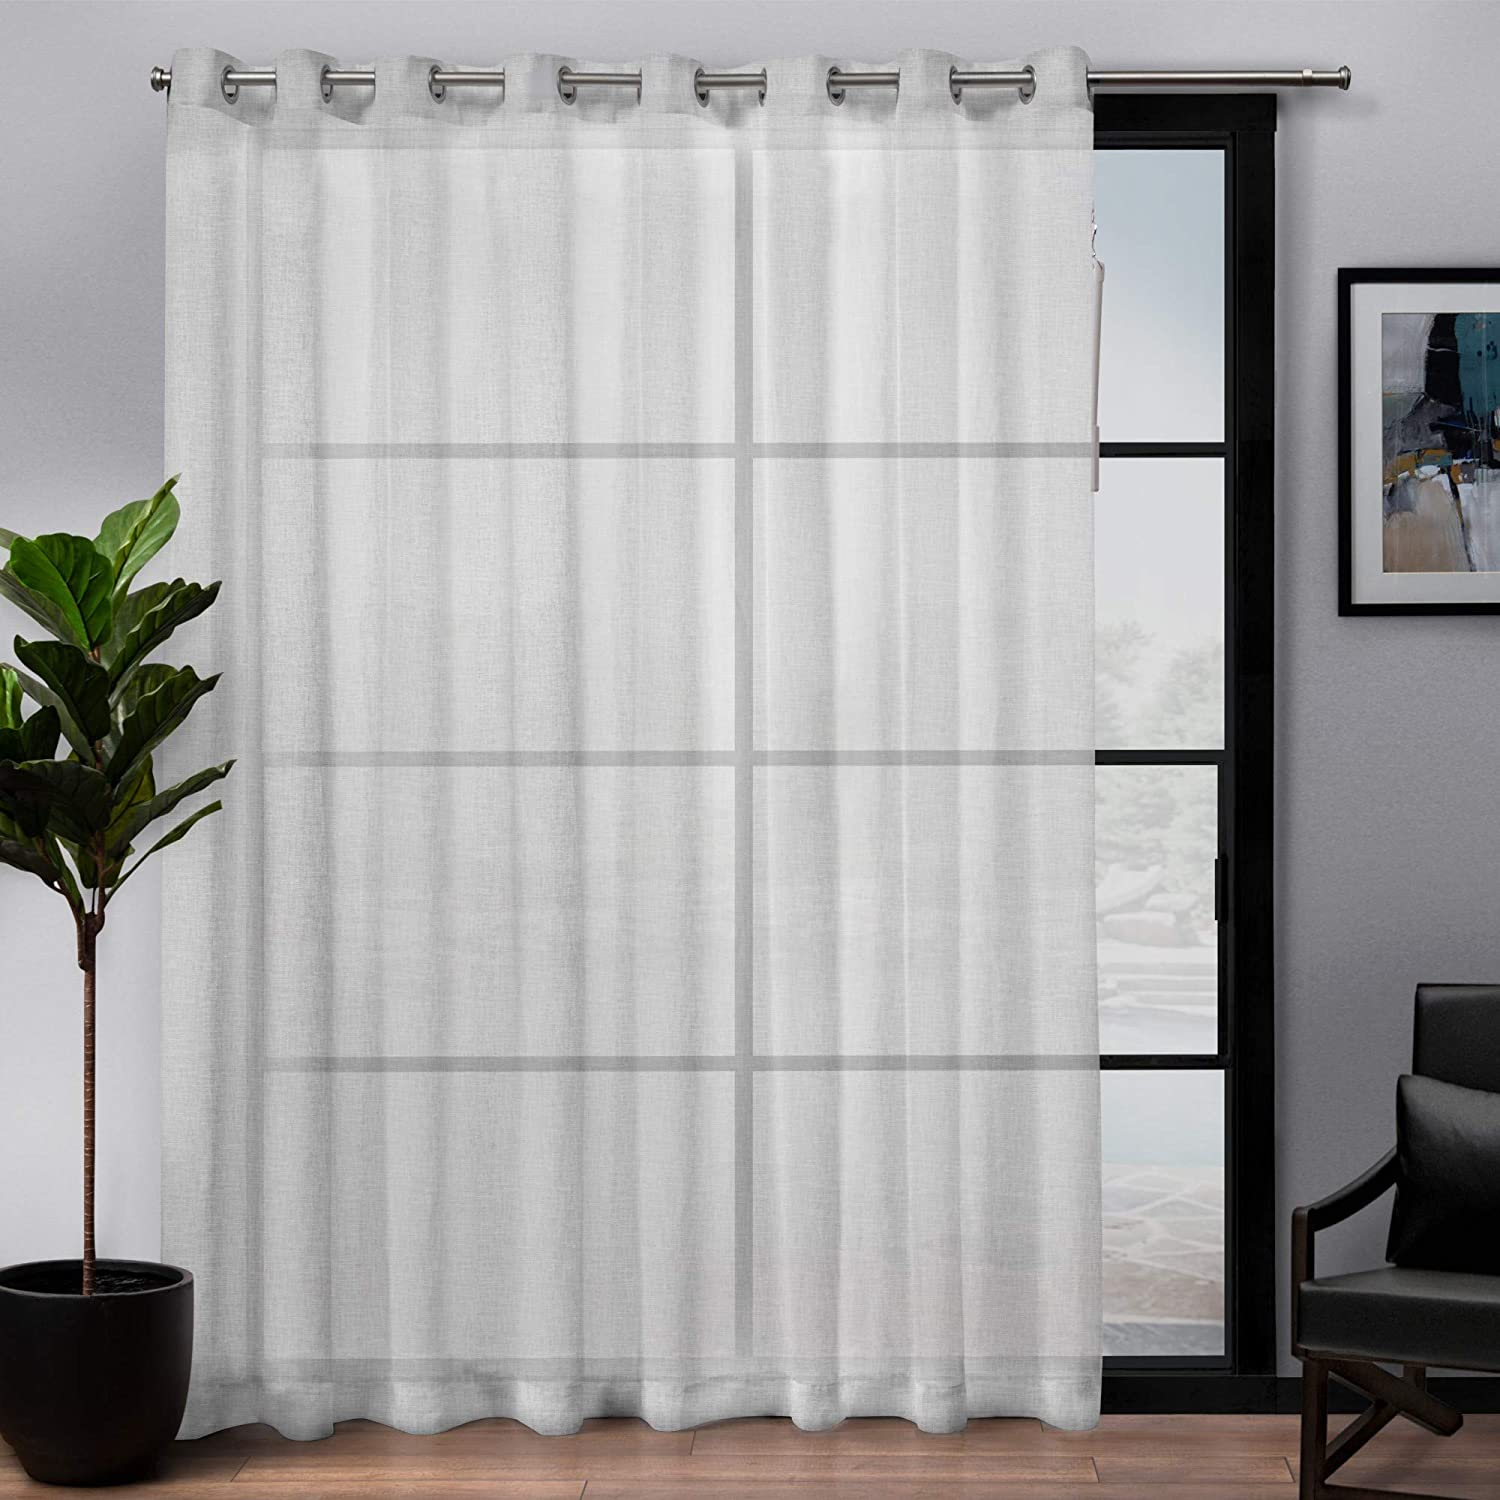 Exclusive Home Curtains Belgian Sheer Textured Linen Look Jacquard Single Patio Panel, 108 x 84, White